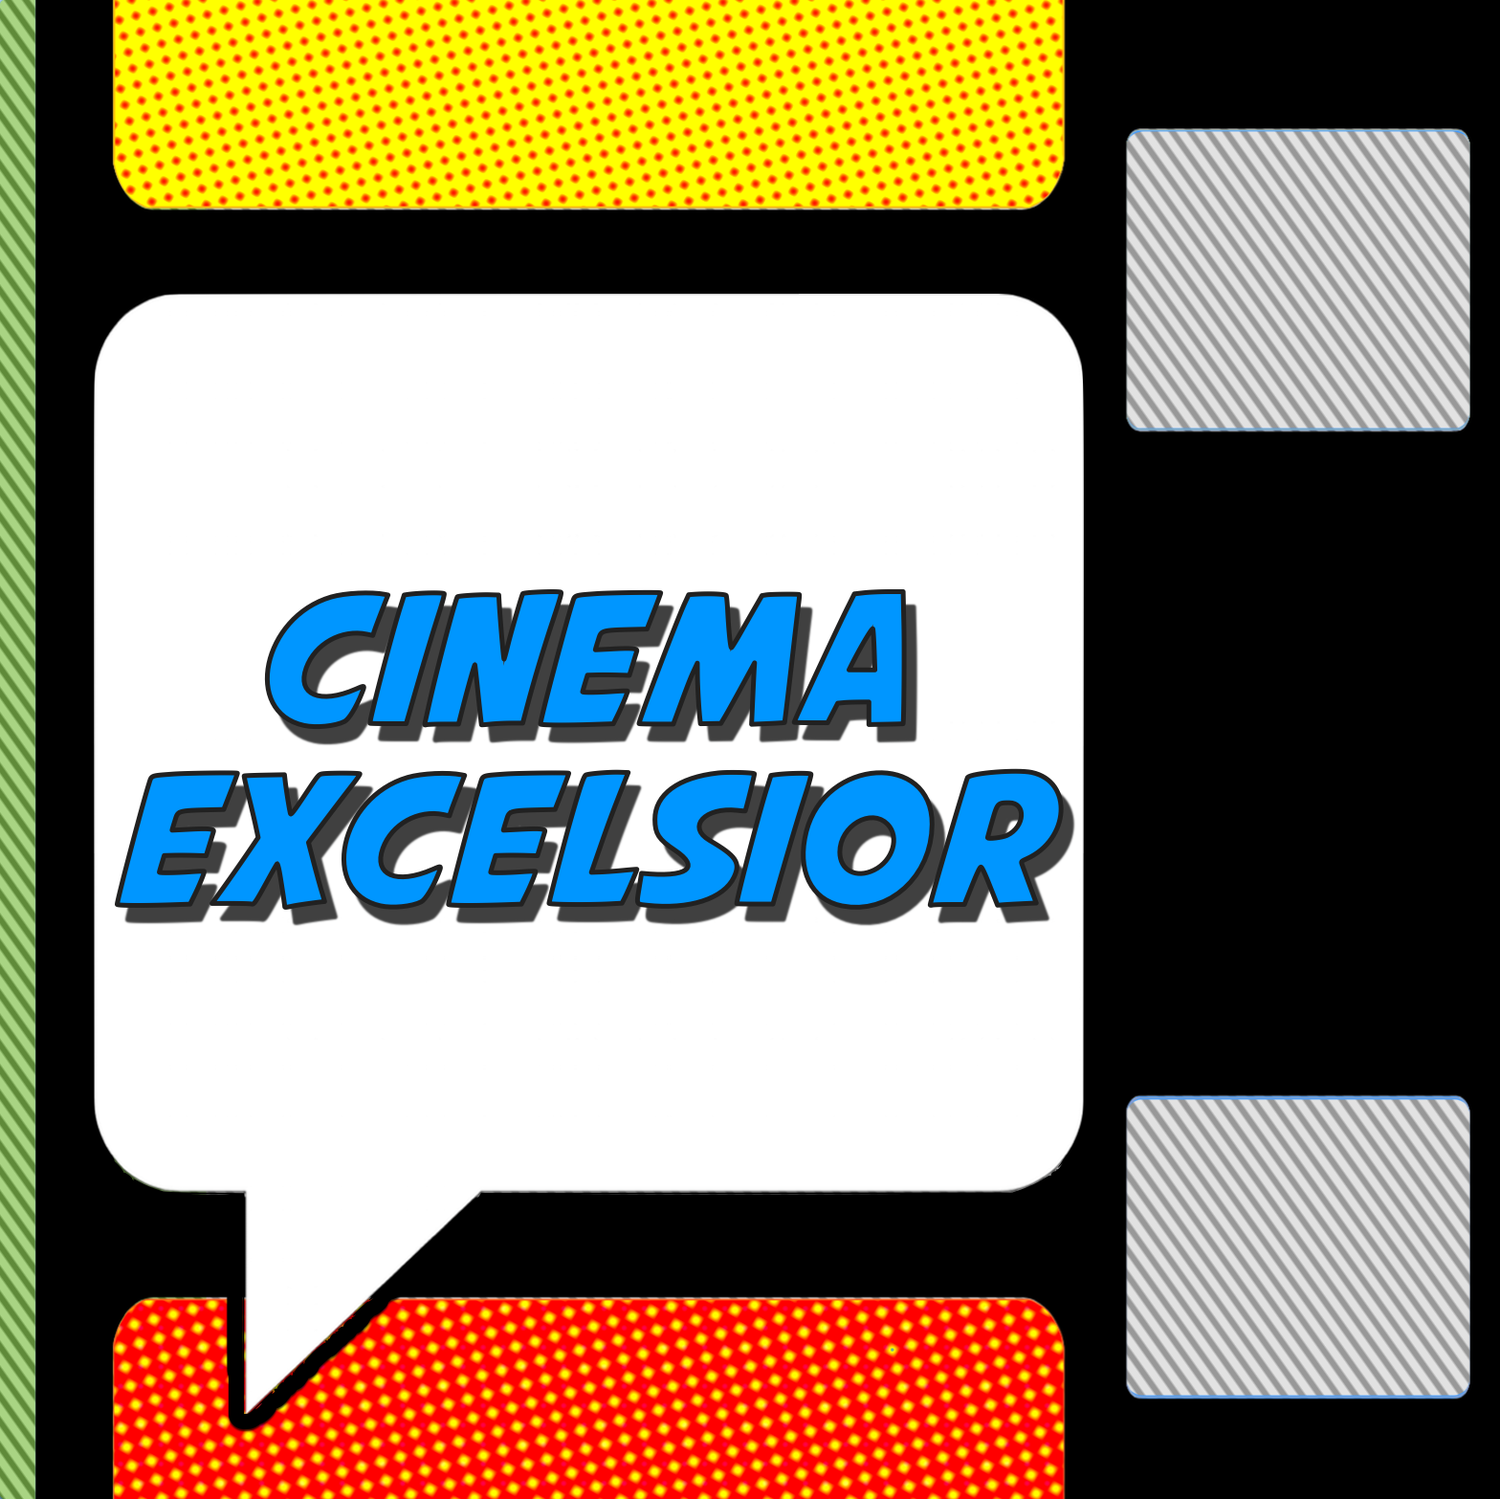 Cinema Excelsior